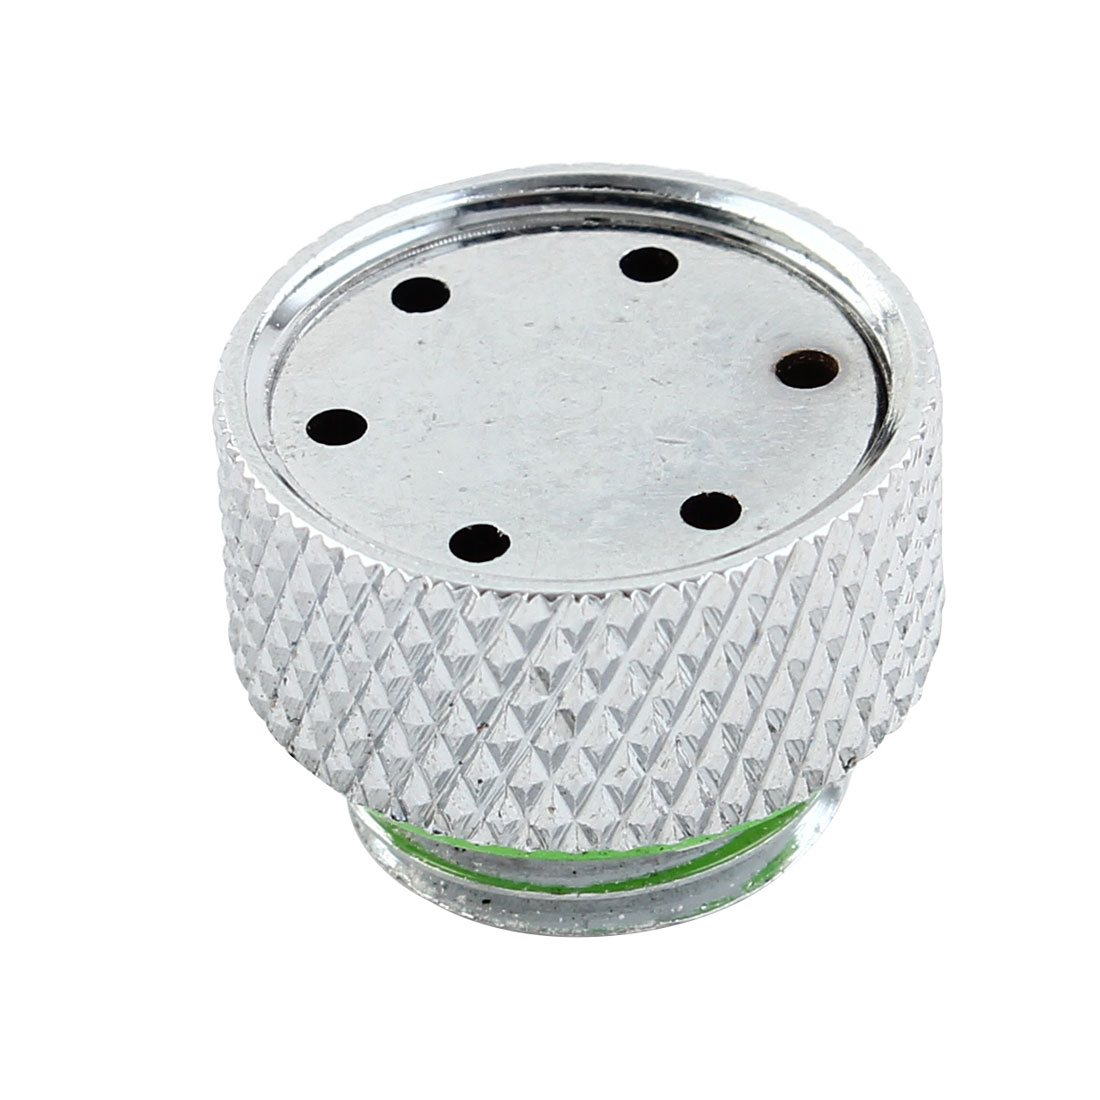 Water Cooling G1/4 Waterstop End Cap Adjustable Automatic Exhaust Vent Valve Silver Tone